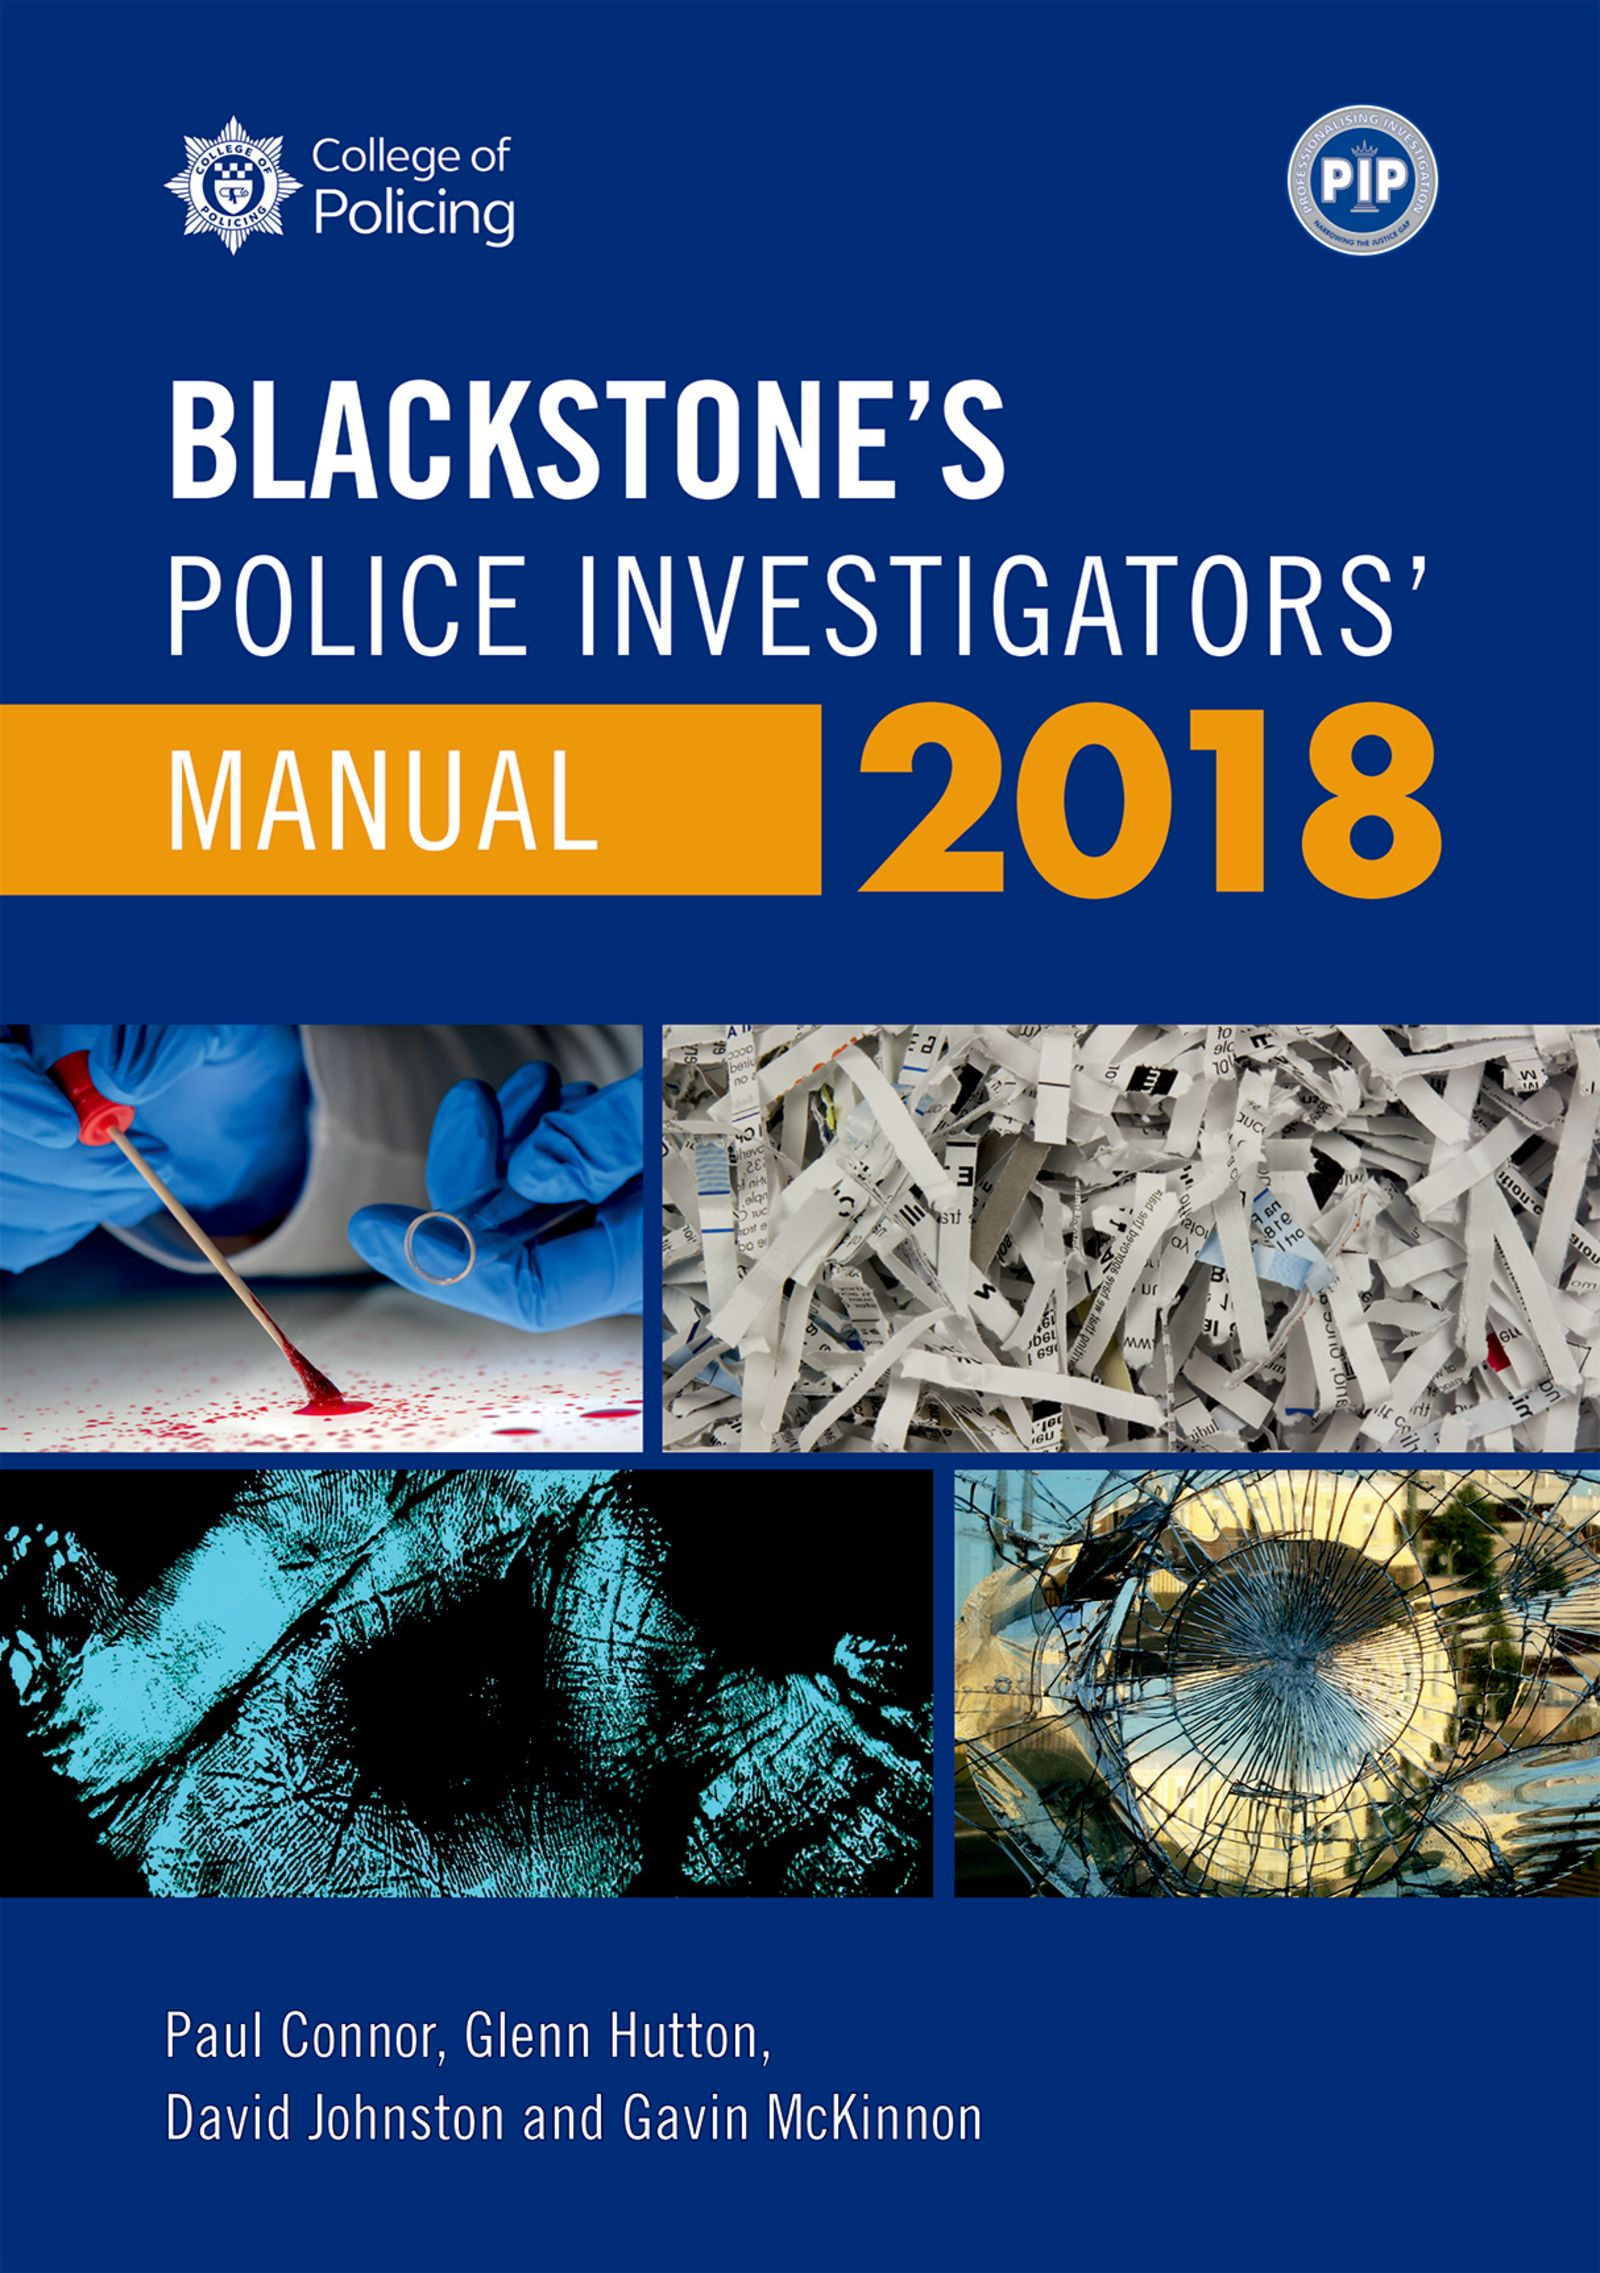 Blackstone's Police Investigators' Manual 2018